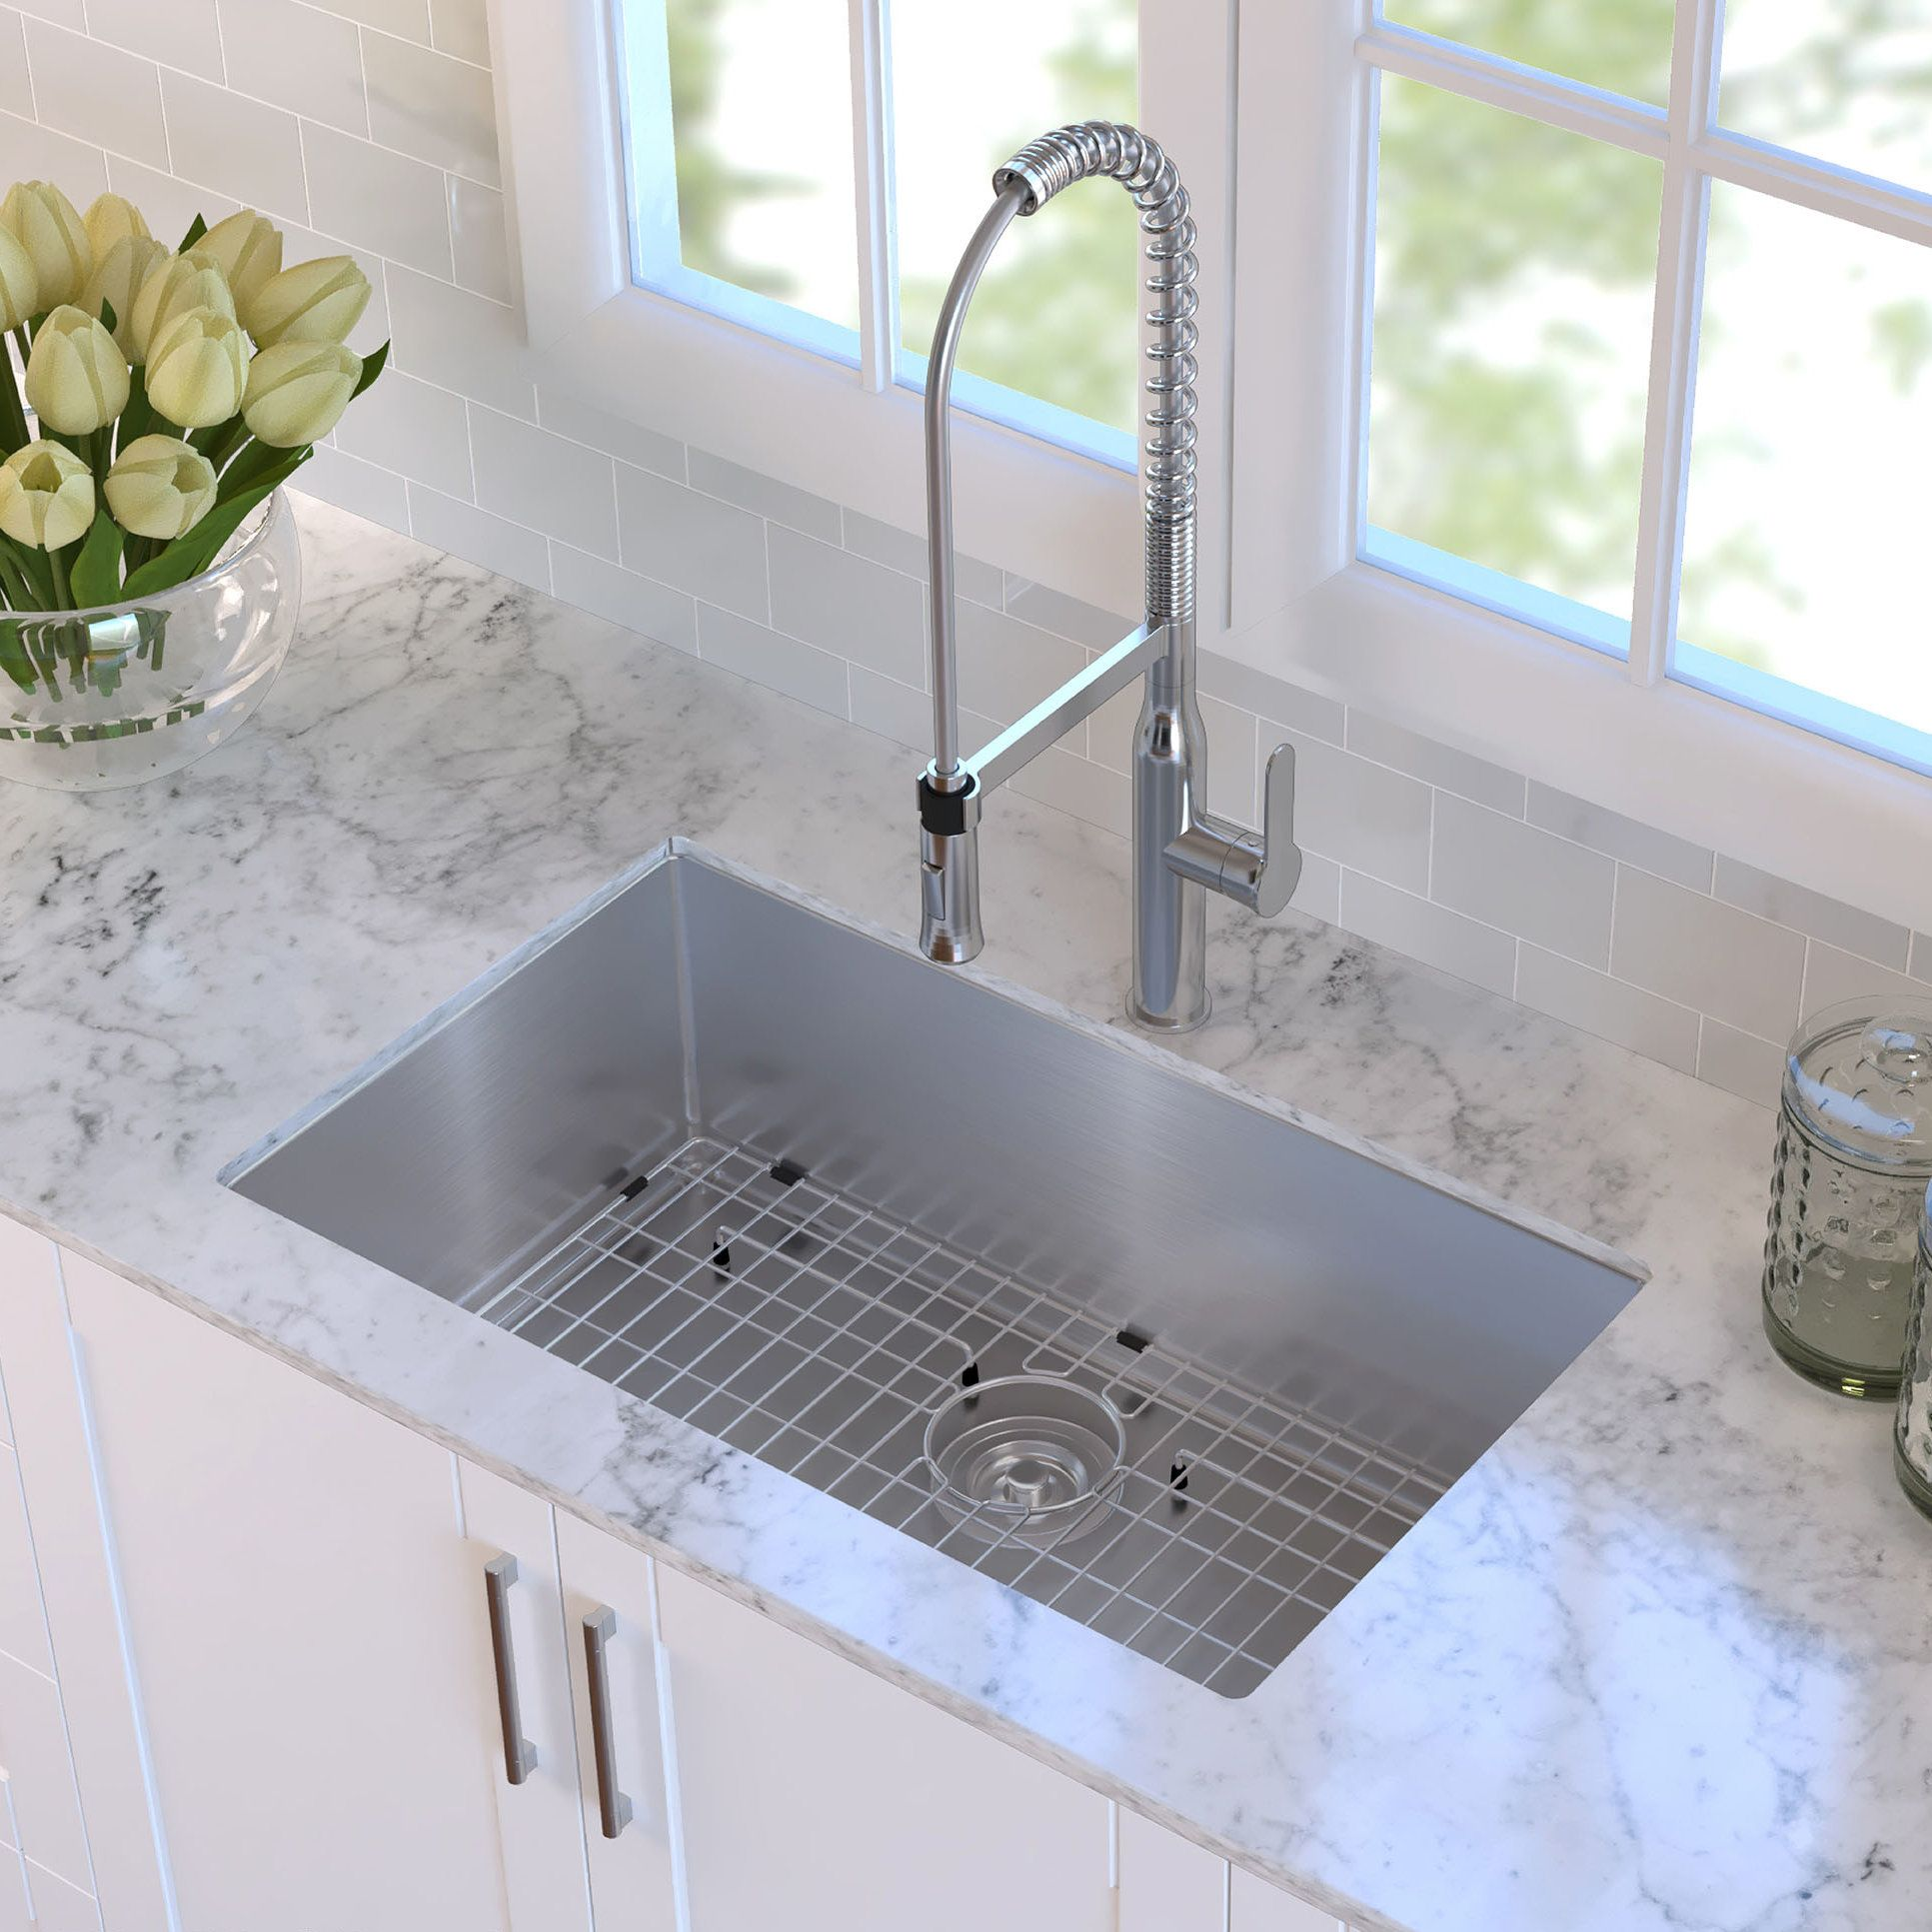 30 x 18 undermount kitchen sink with sink grid and drain assembly rh in pinterest com